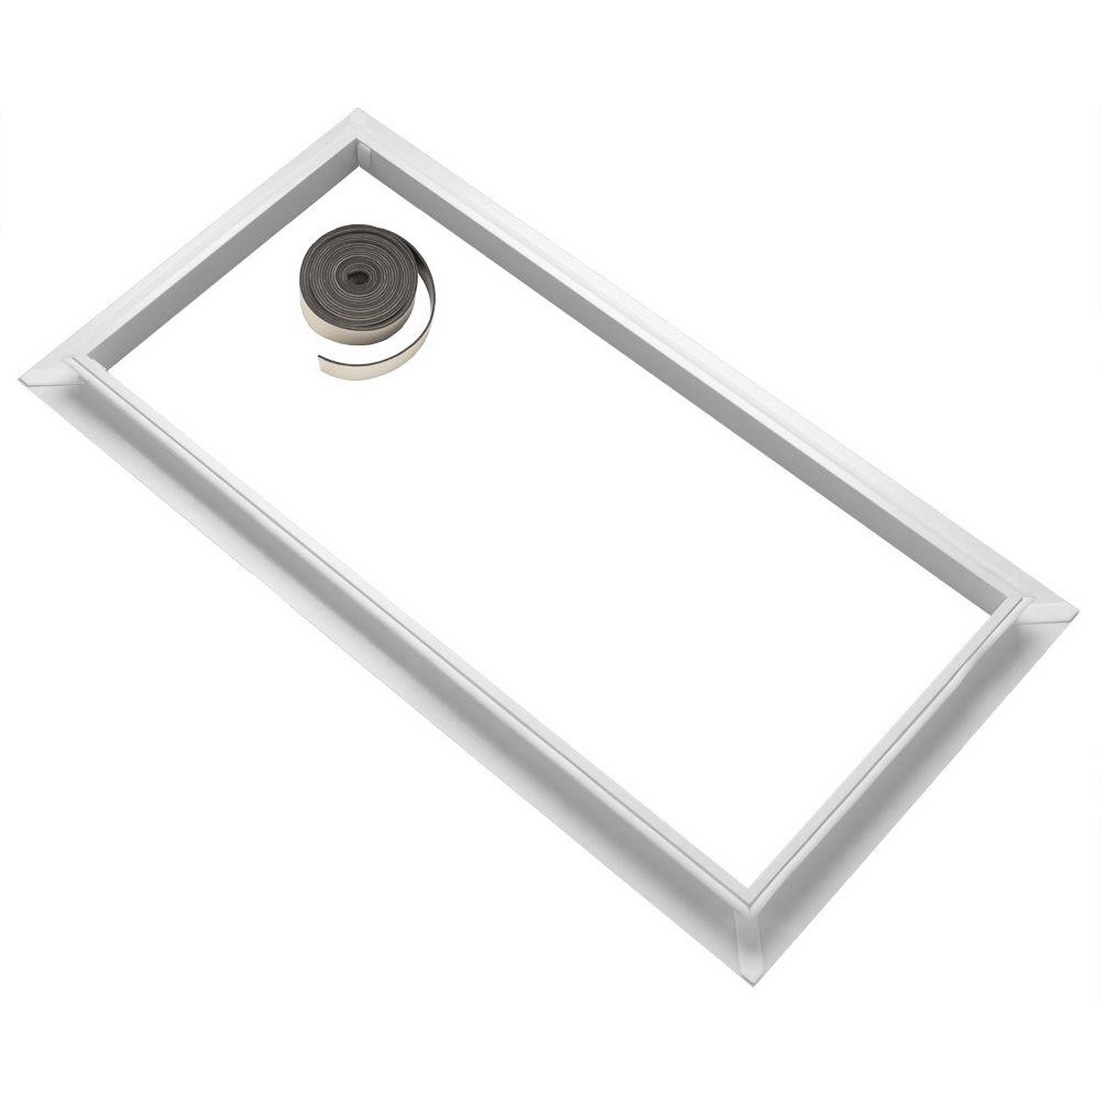 Skylight Accessory Tray To Fit Blind to FCM White ZZZ 199 3046